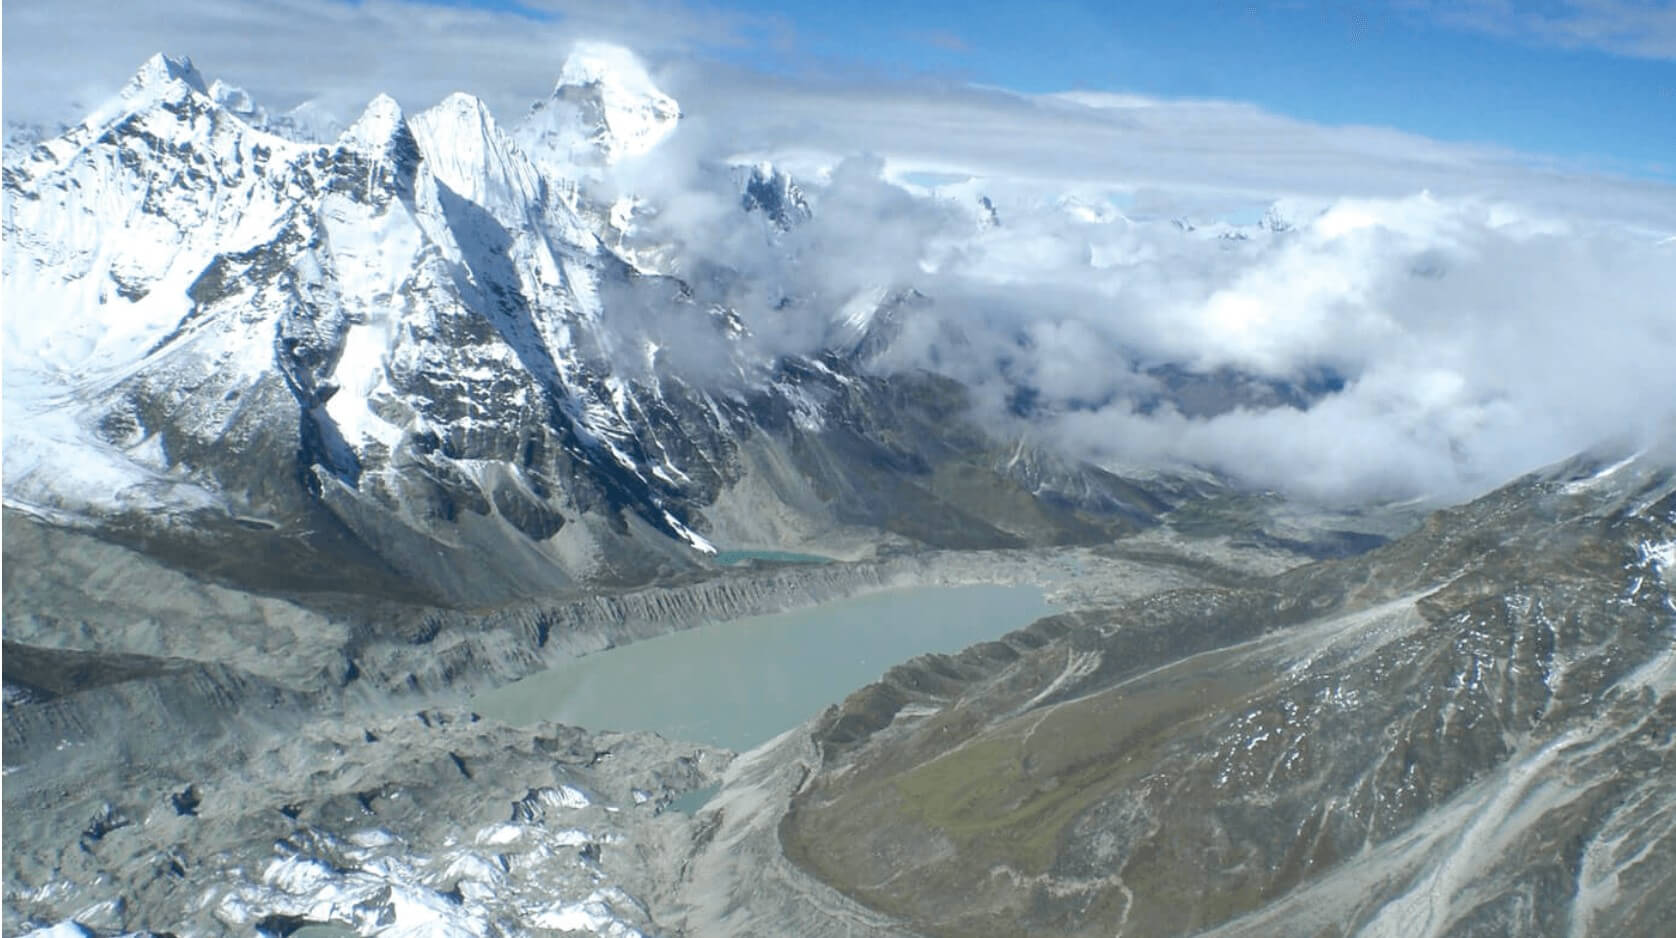 Two-thirds of Himalayan glaciers could melt by 2100, new study warns